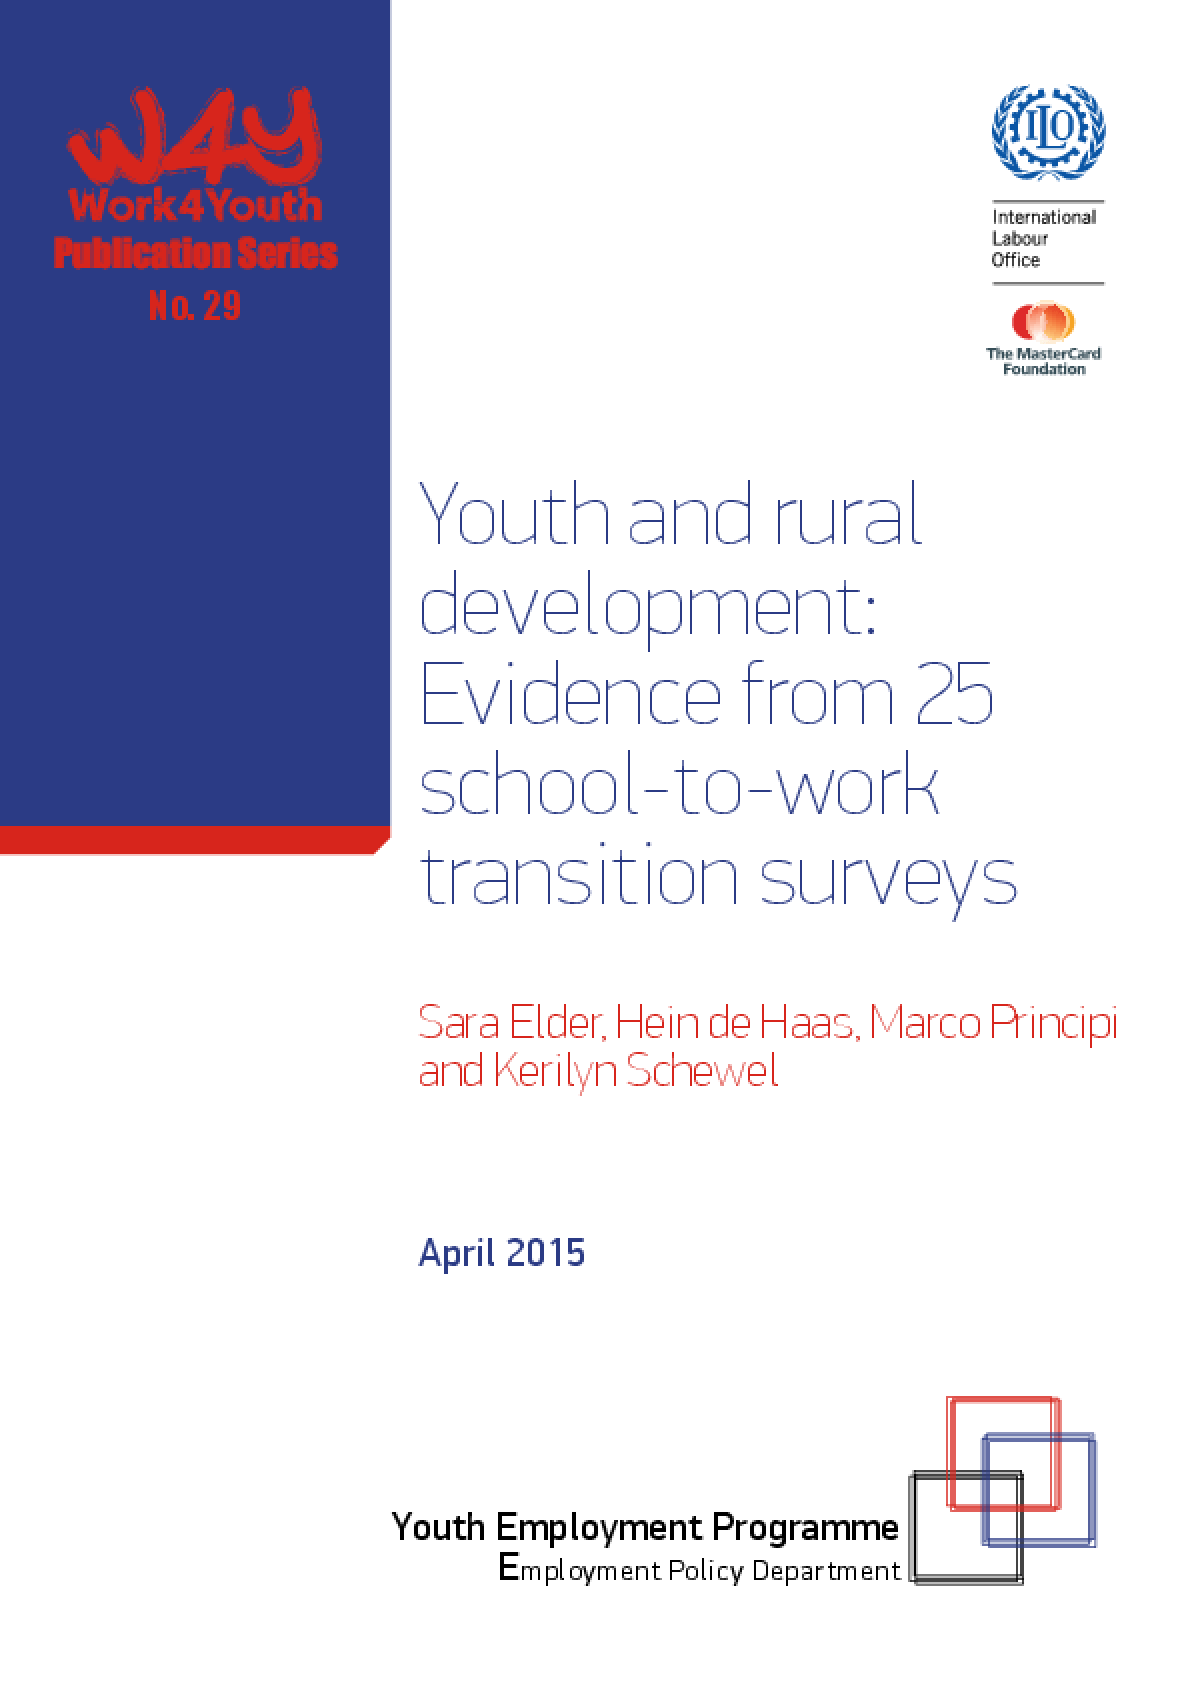 Youth and Rural Development: Evidence from 25 School-to-Work Transition Surveys